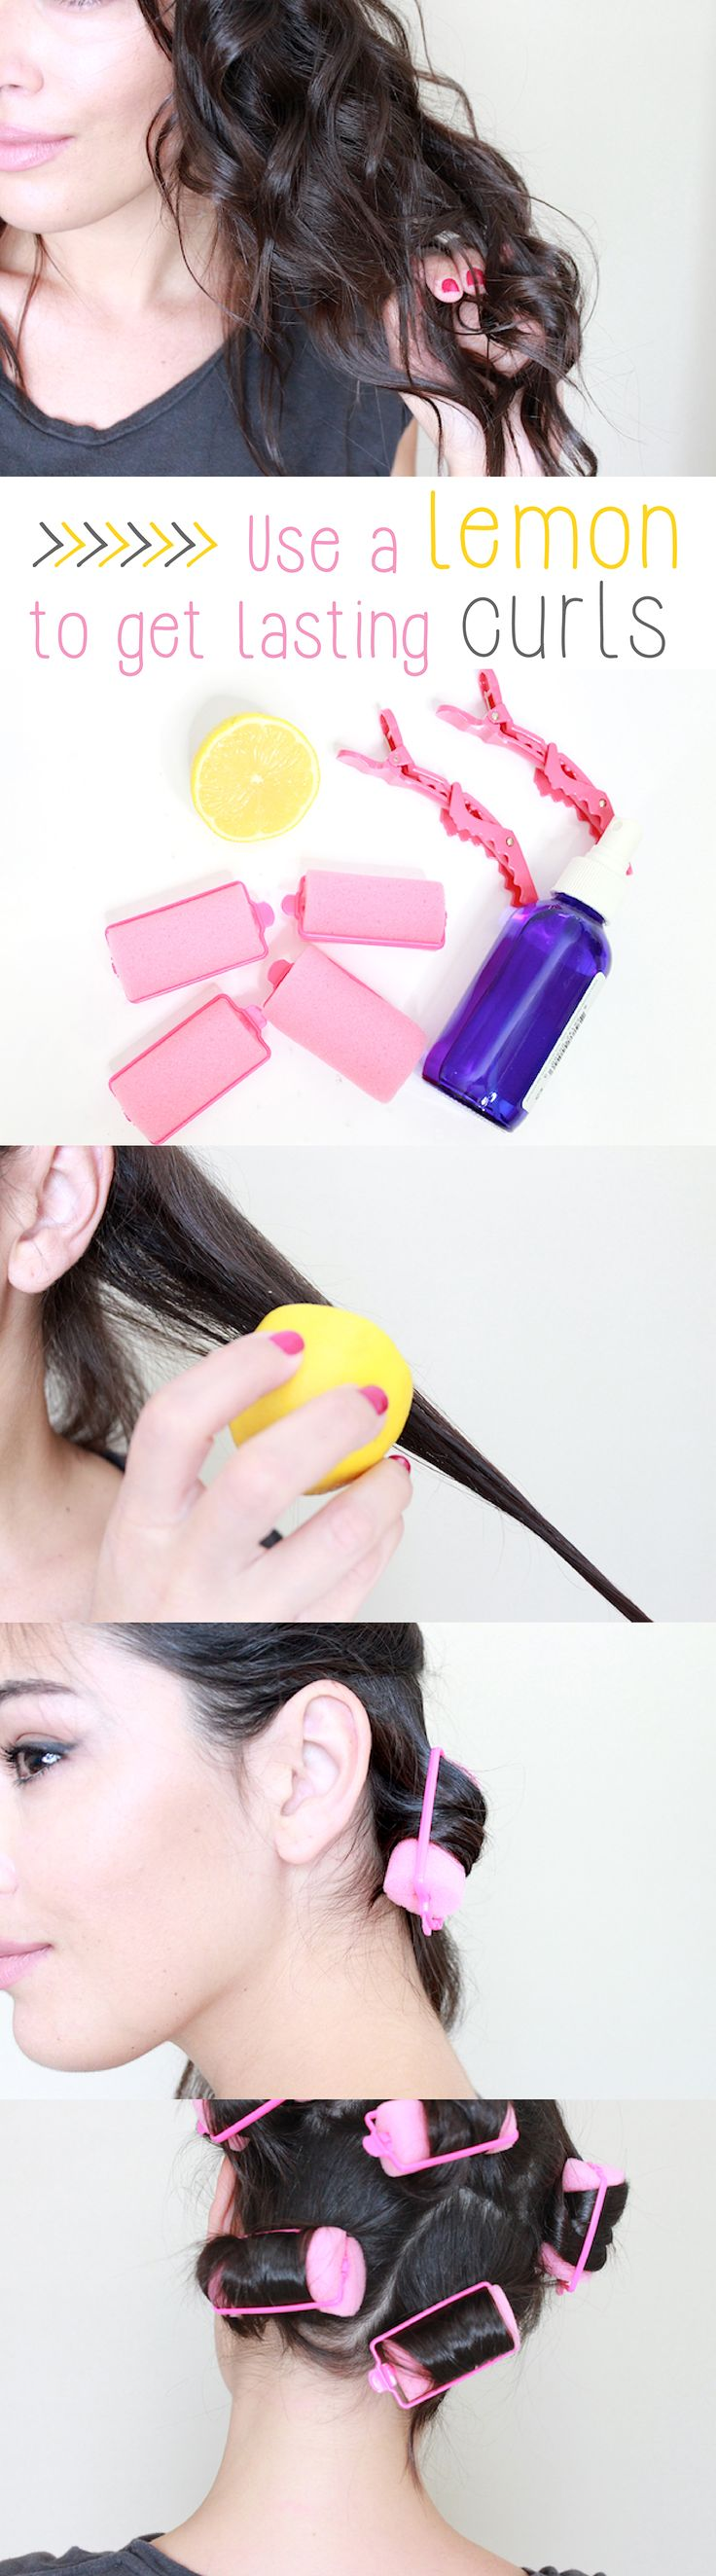 This works on your hair, no matter how long or thick! Forget harsh products and use lemon on your hair right before setting in the curls overnight. More details: http://www.ehow.com/ehow-style/blog/how-to-get-long-lasting-curls-with-a-lemon/?utm_source=pinterest&utm_medium=fanpage&utm_content=blog